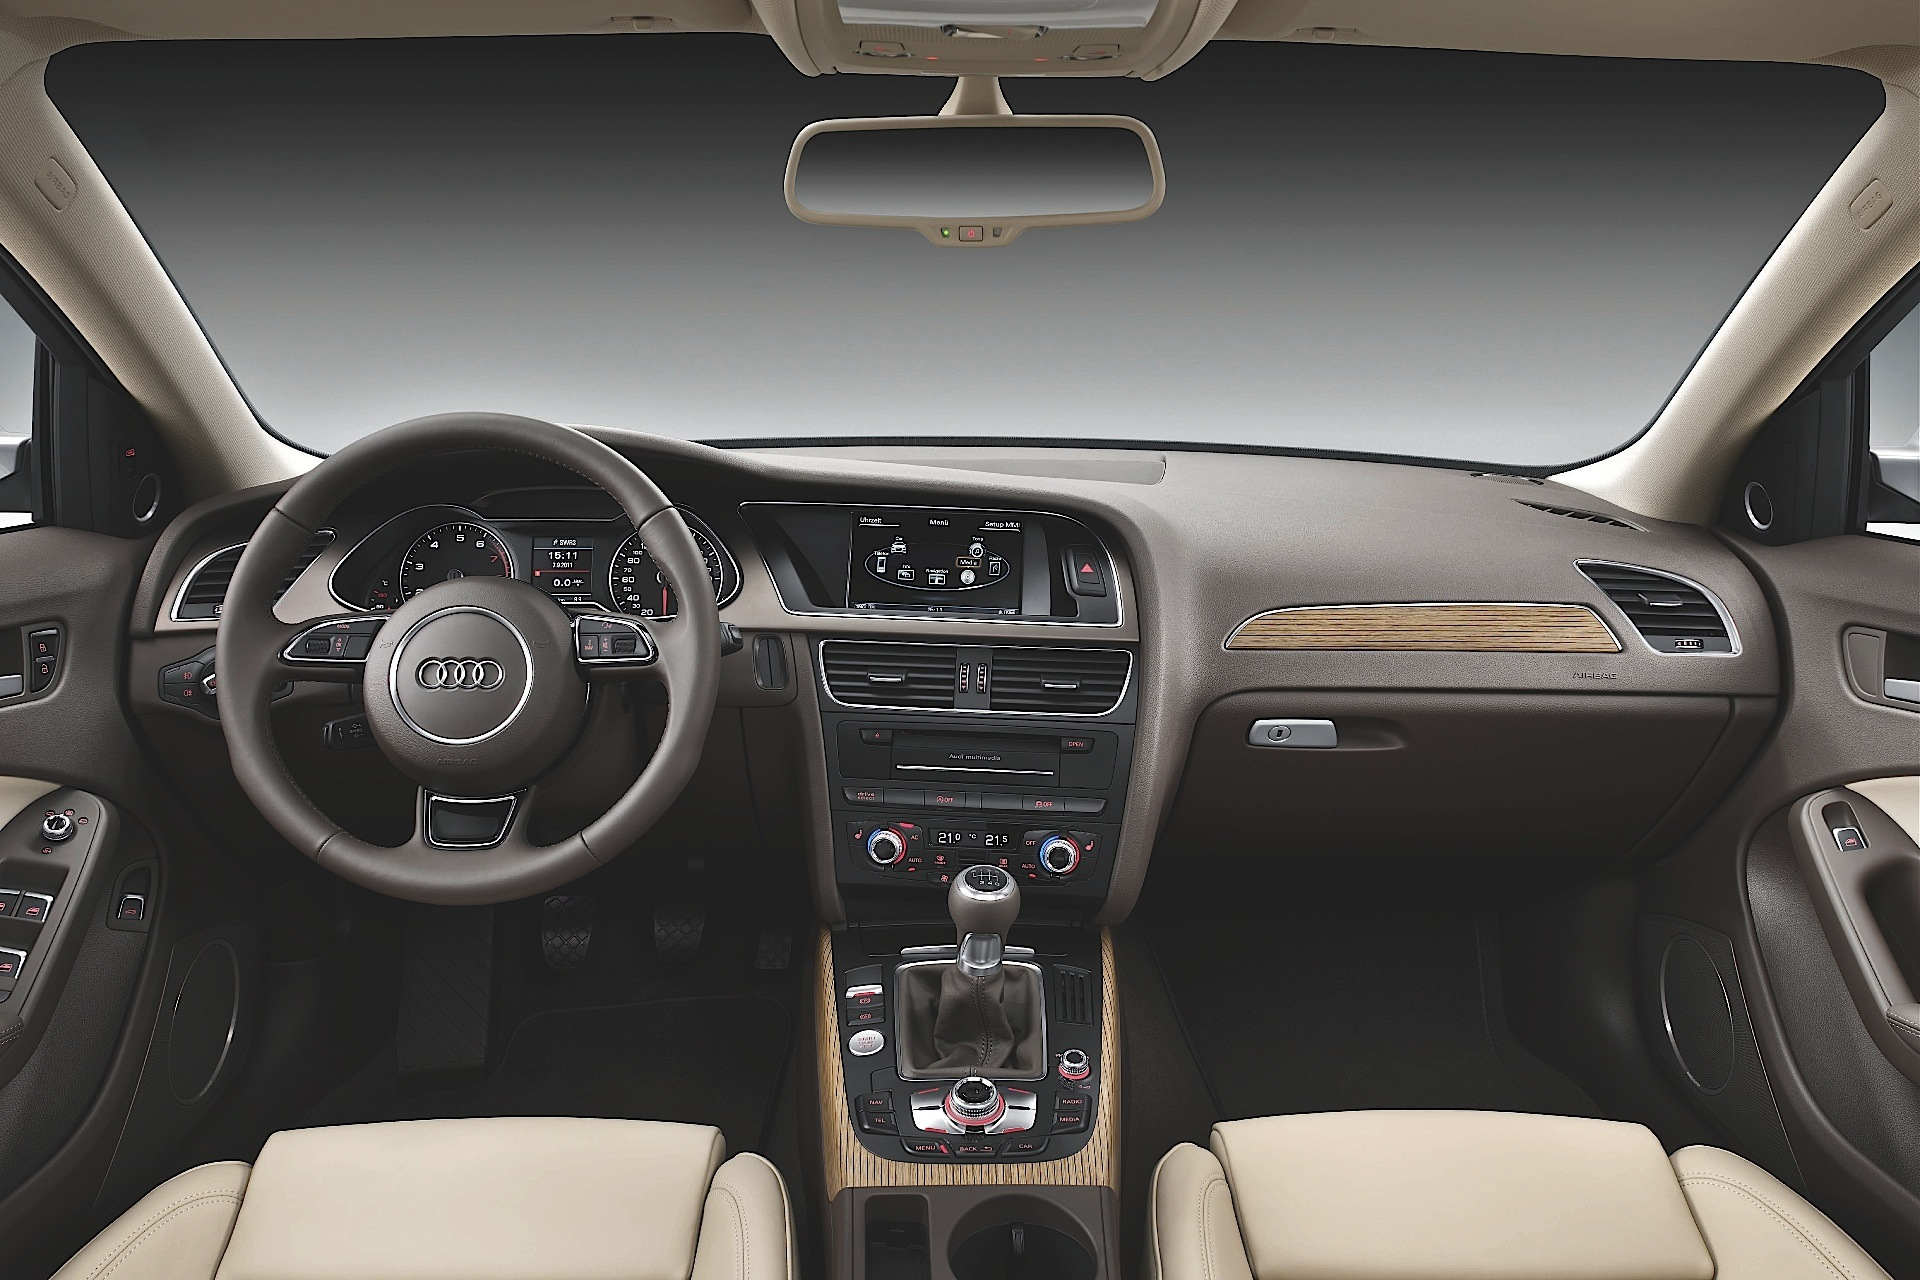 2007 Audi A4 Information and photos ZombieDrive